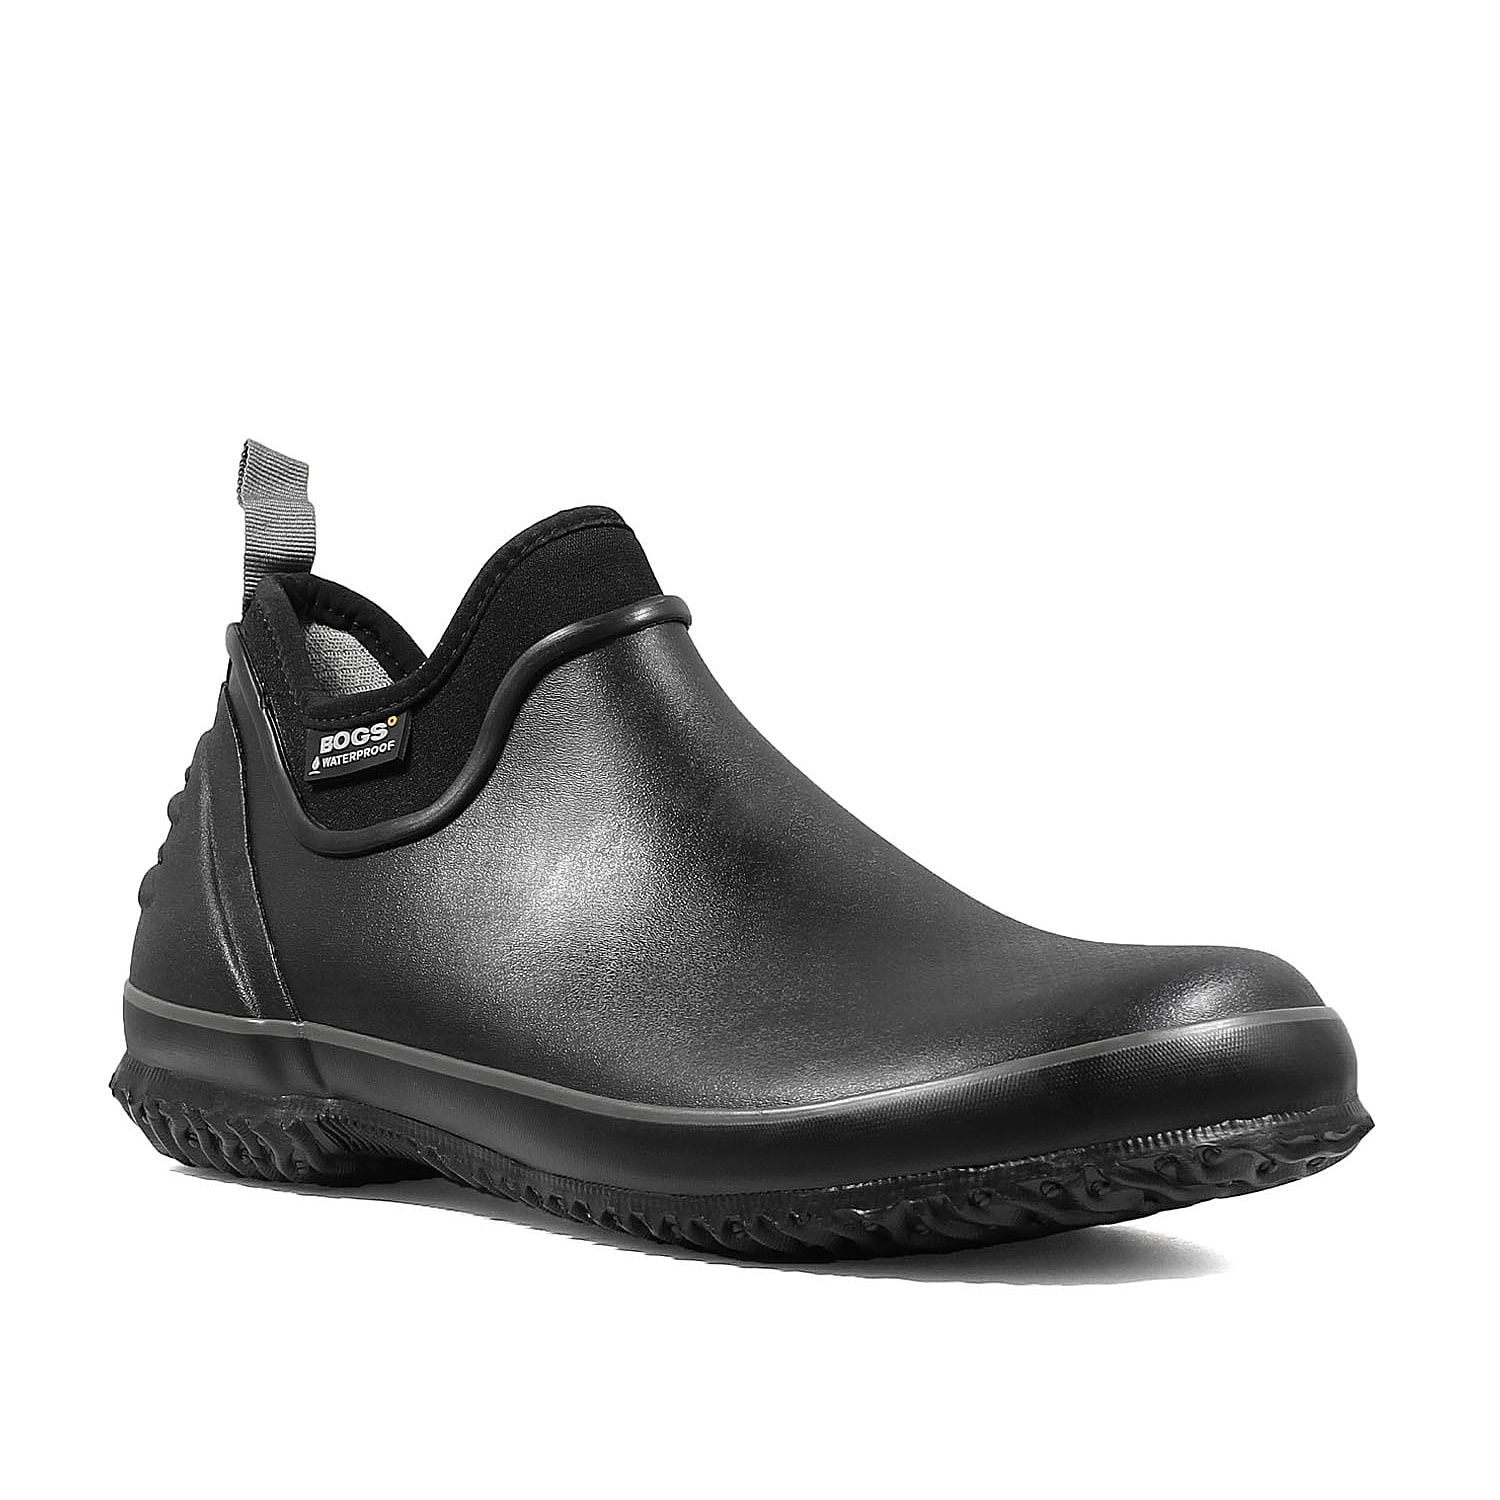 Don\\\'t be afraid of getting wet in the Urban Farmer water shoe from Bogs. This waterproof pair featuresDuraFresh natural bio-technology to fight odors with Max-Wick and EverDry to evaporate sweat and keep feet dry.